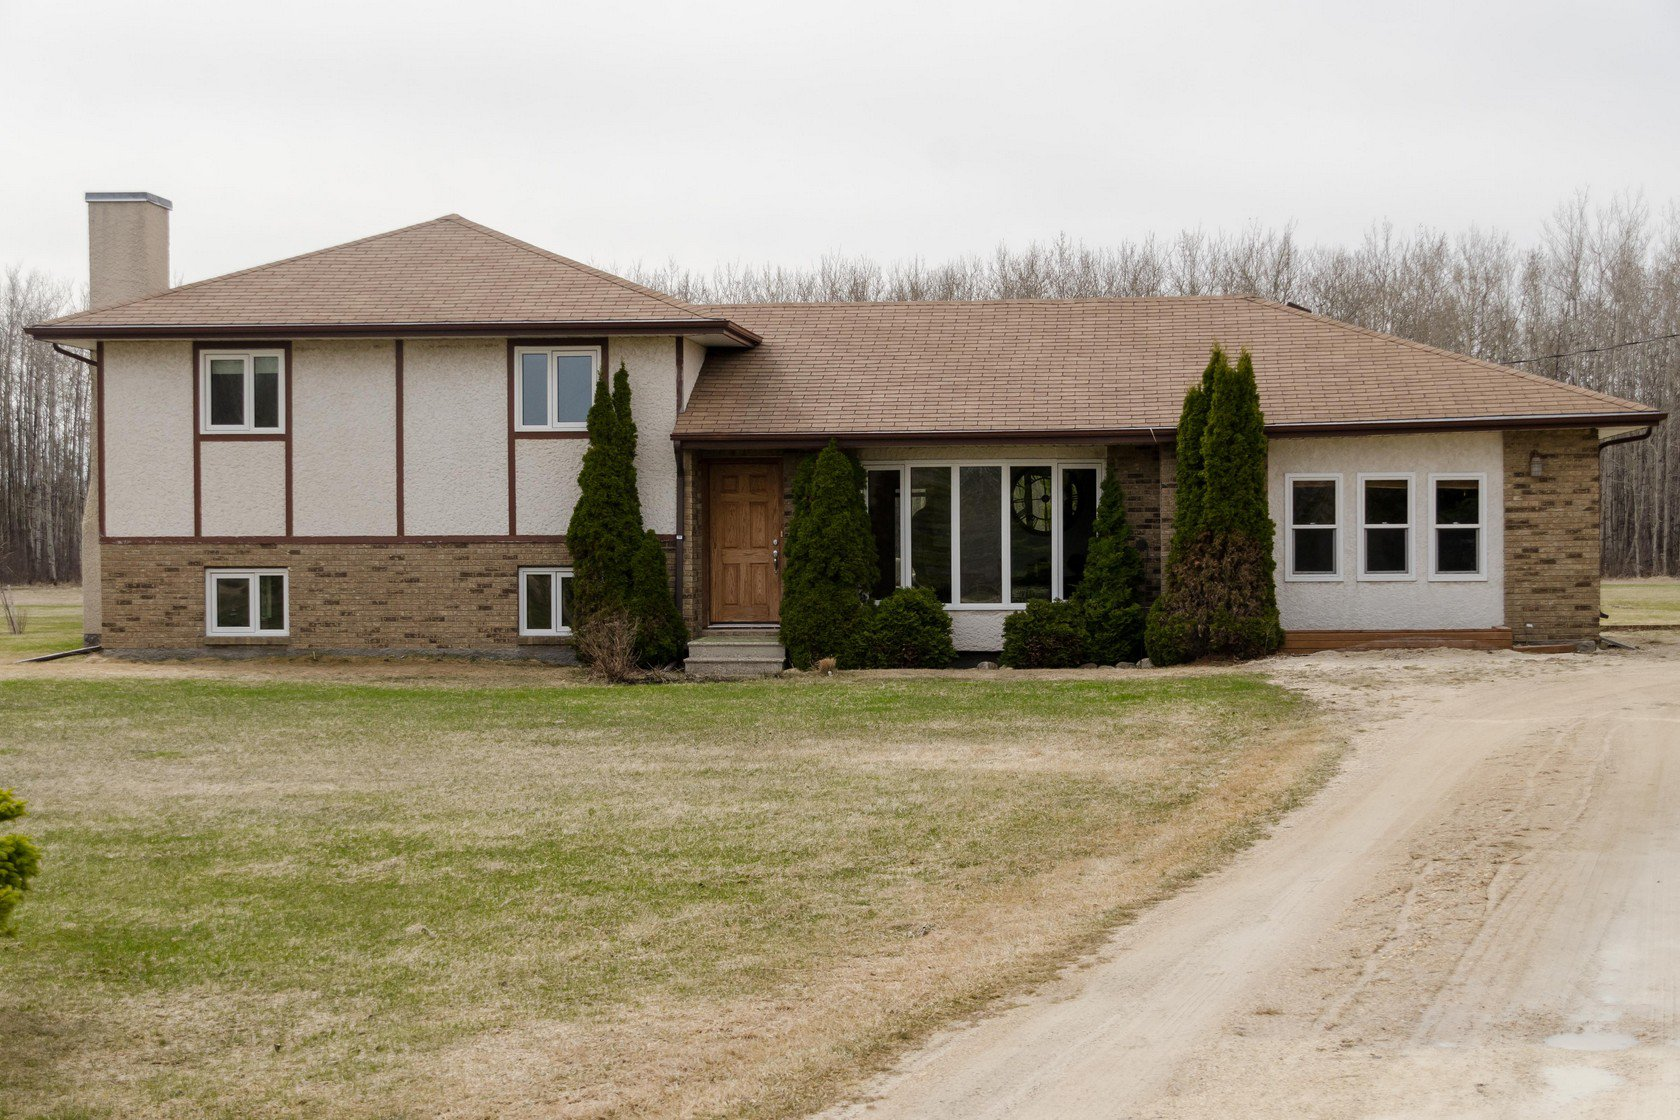 FANTASTIC COUNTRY HOME! Ideal 2000sf 3 Bedroom 4 Level Split Family Home, Numerous Upgrades, Landscaped 5 Acre Lot.